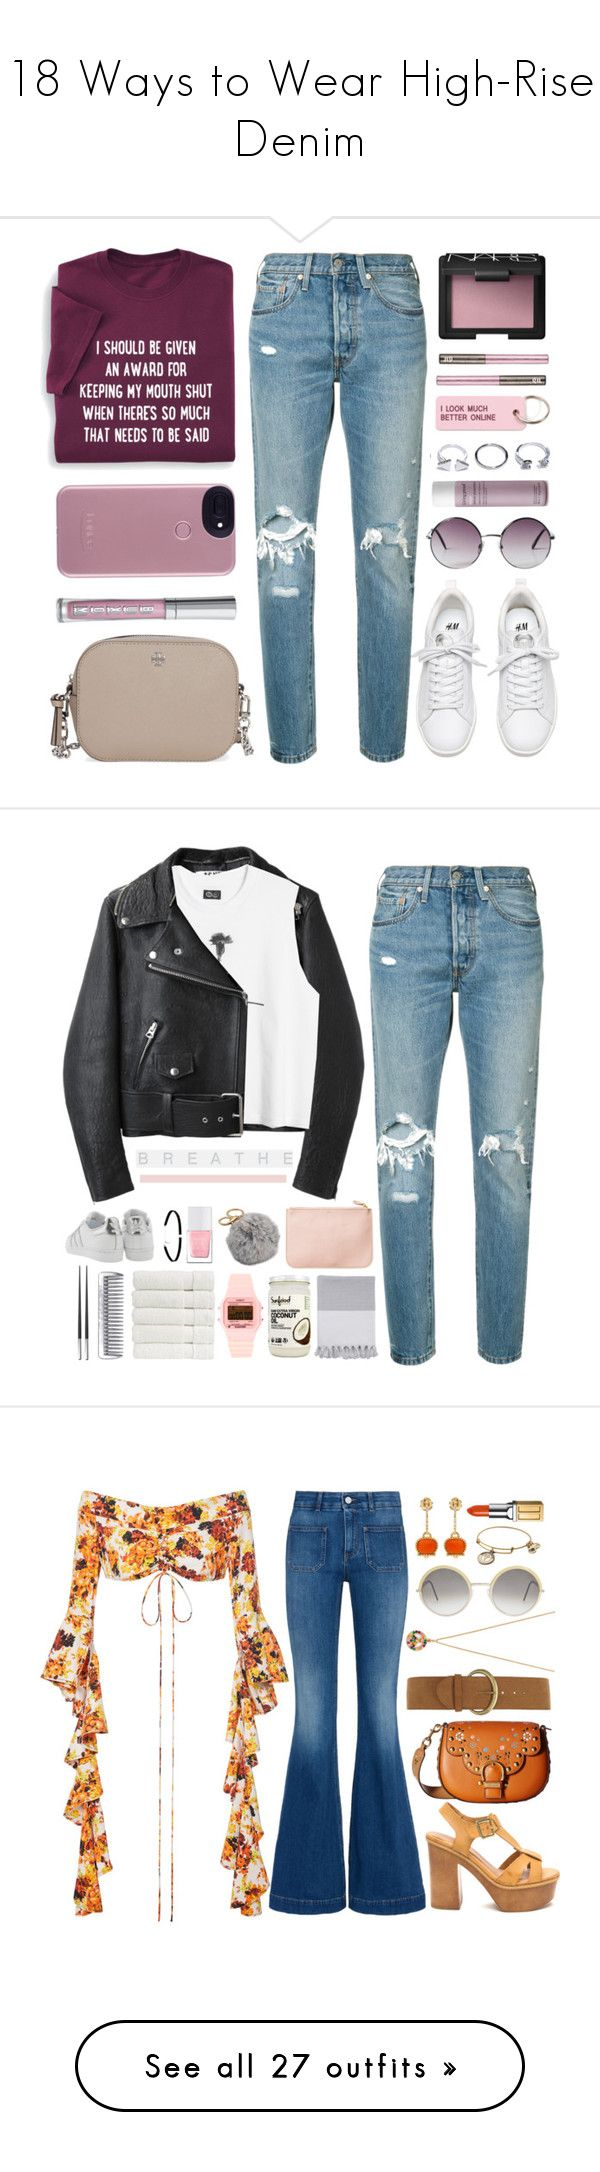 """""""18 Ways to Wear High-Rise Denim"""" by polyvore-editorial ❤ liked on Polyvore featuring waystowear, highrisedenim, Levi's, Monki, NARS Cosmetics, Tory Burch, GUESS, Buxom, Living Proof and Various Projects"""